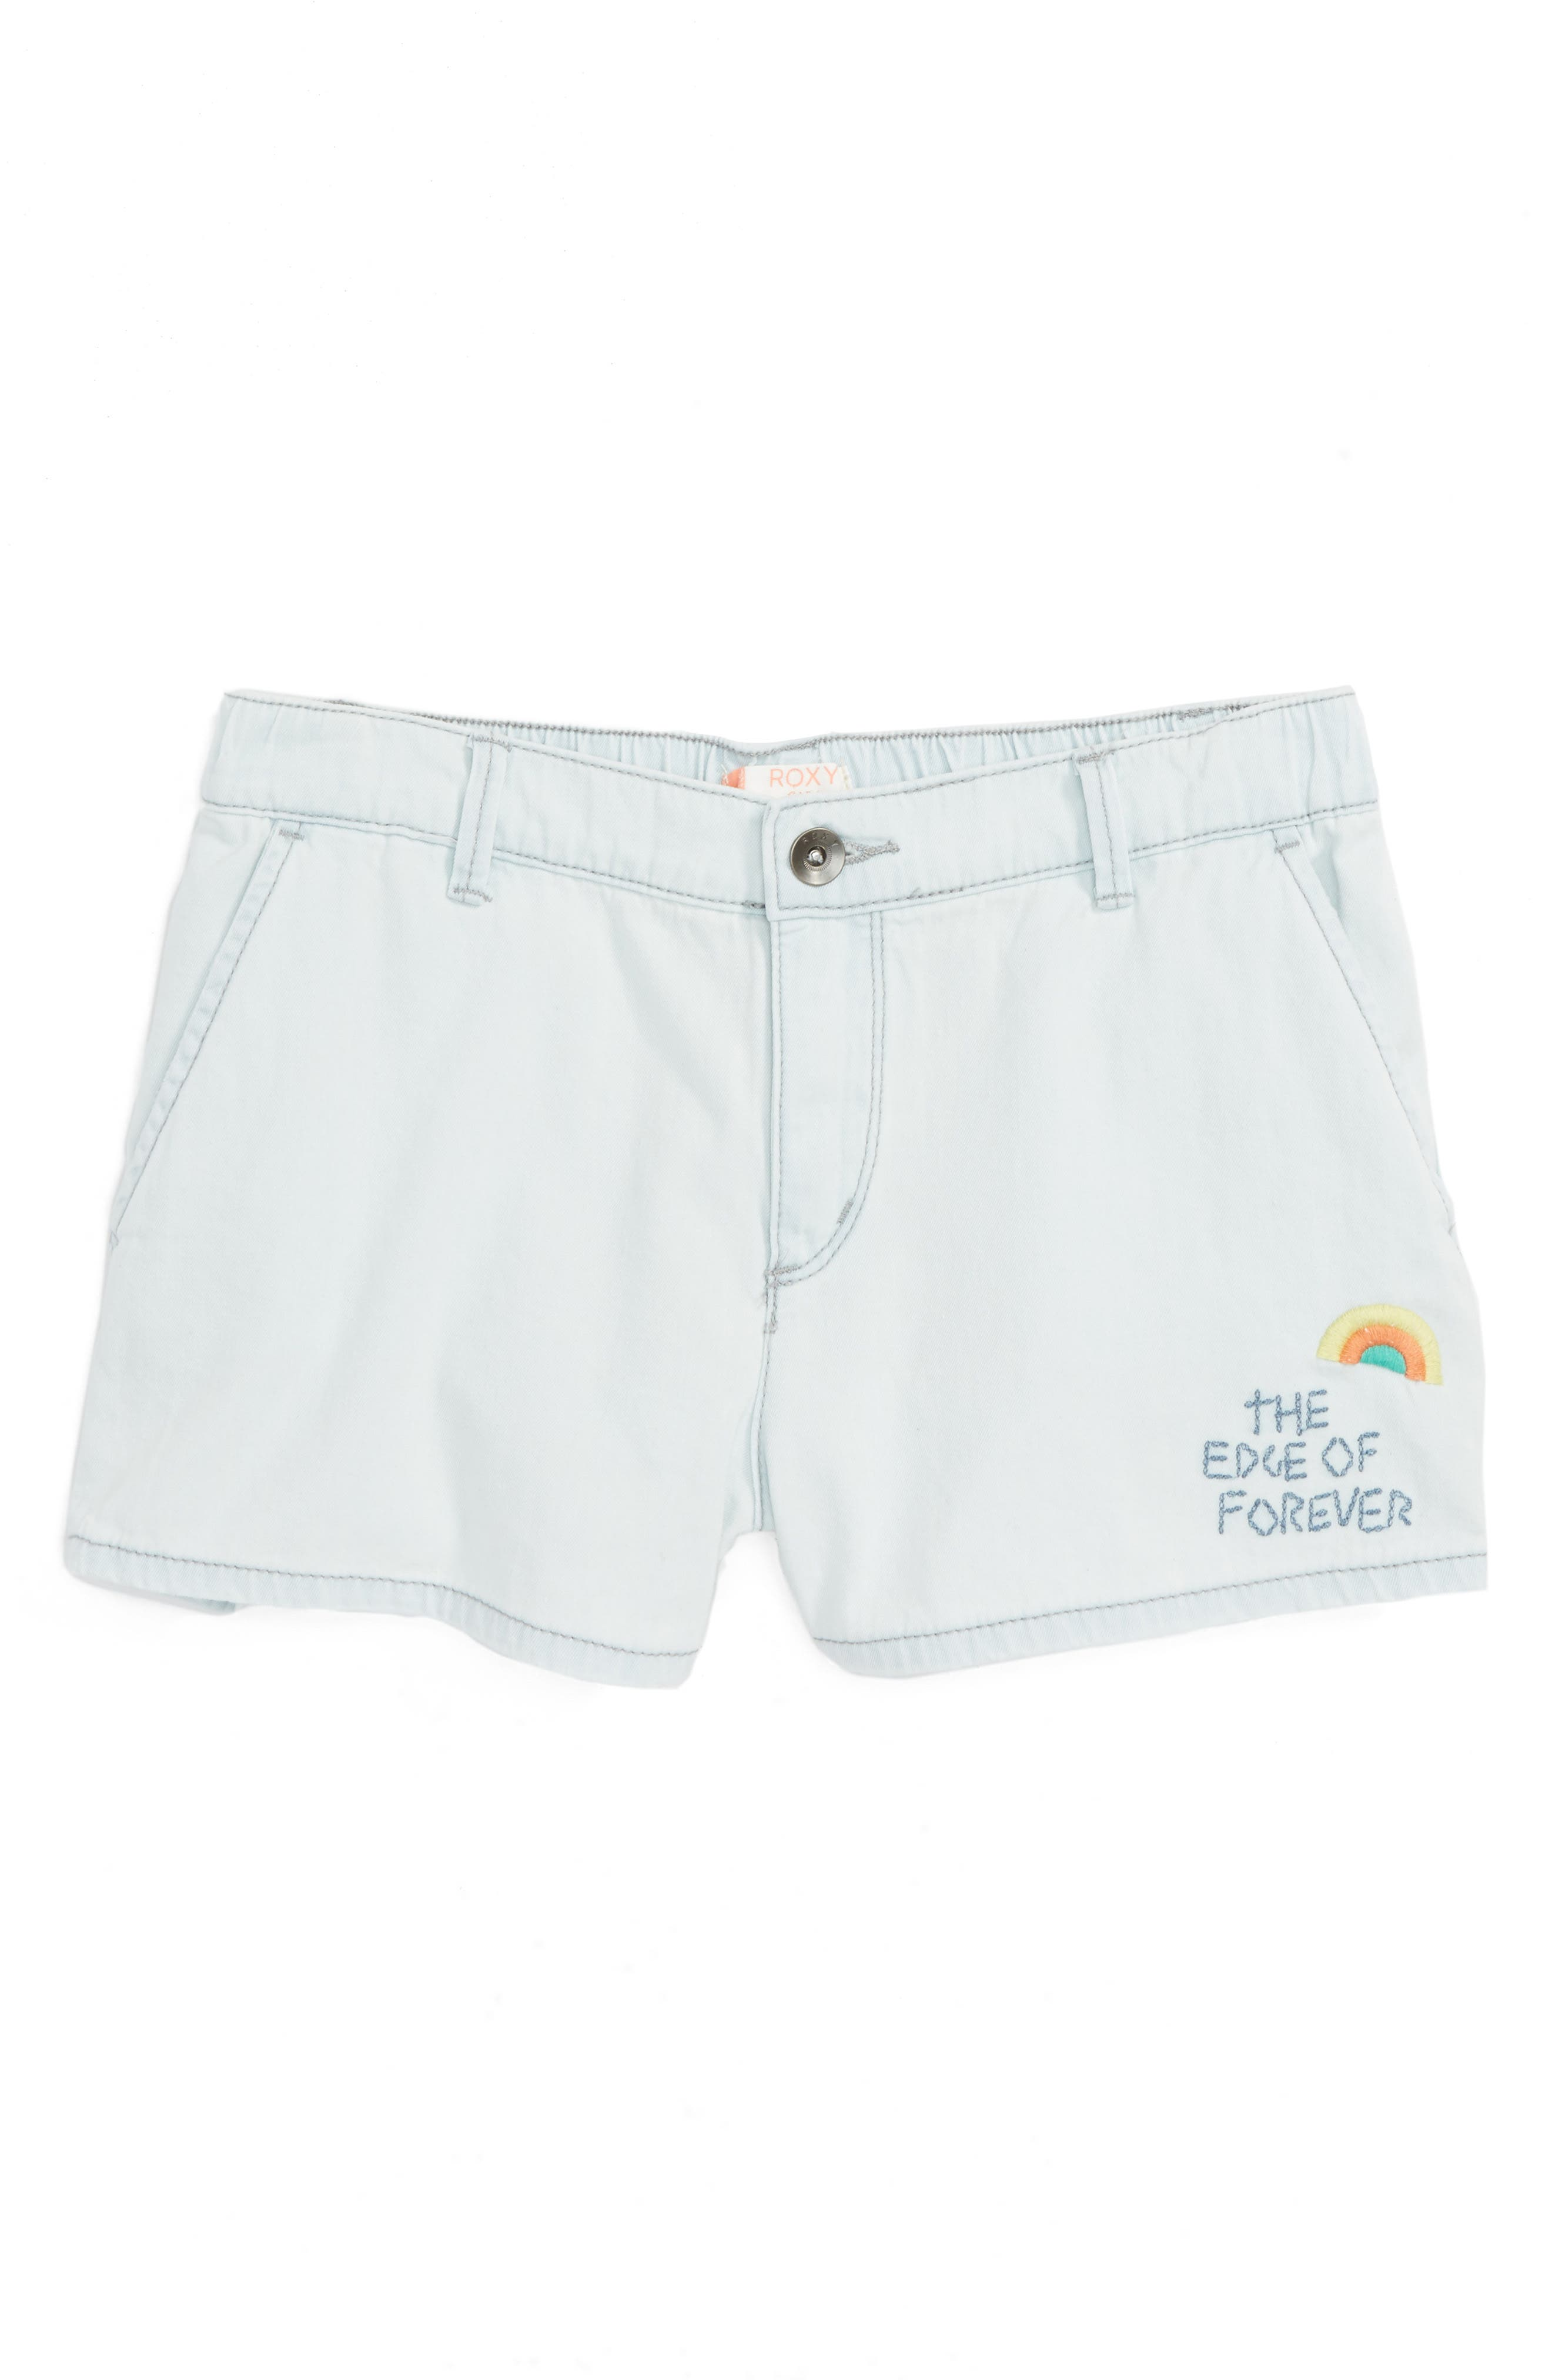 ROXY West Coast And U - Edge of Forever Rainbow Shorts